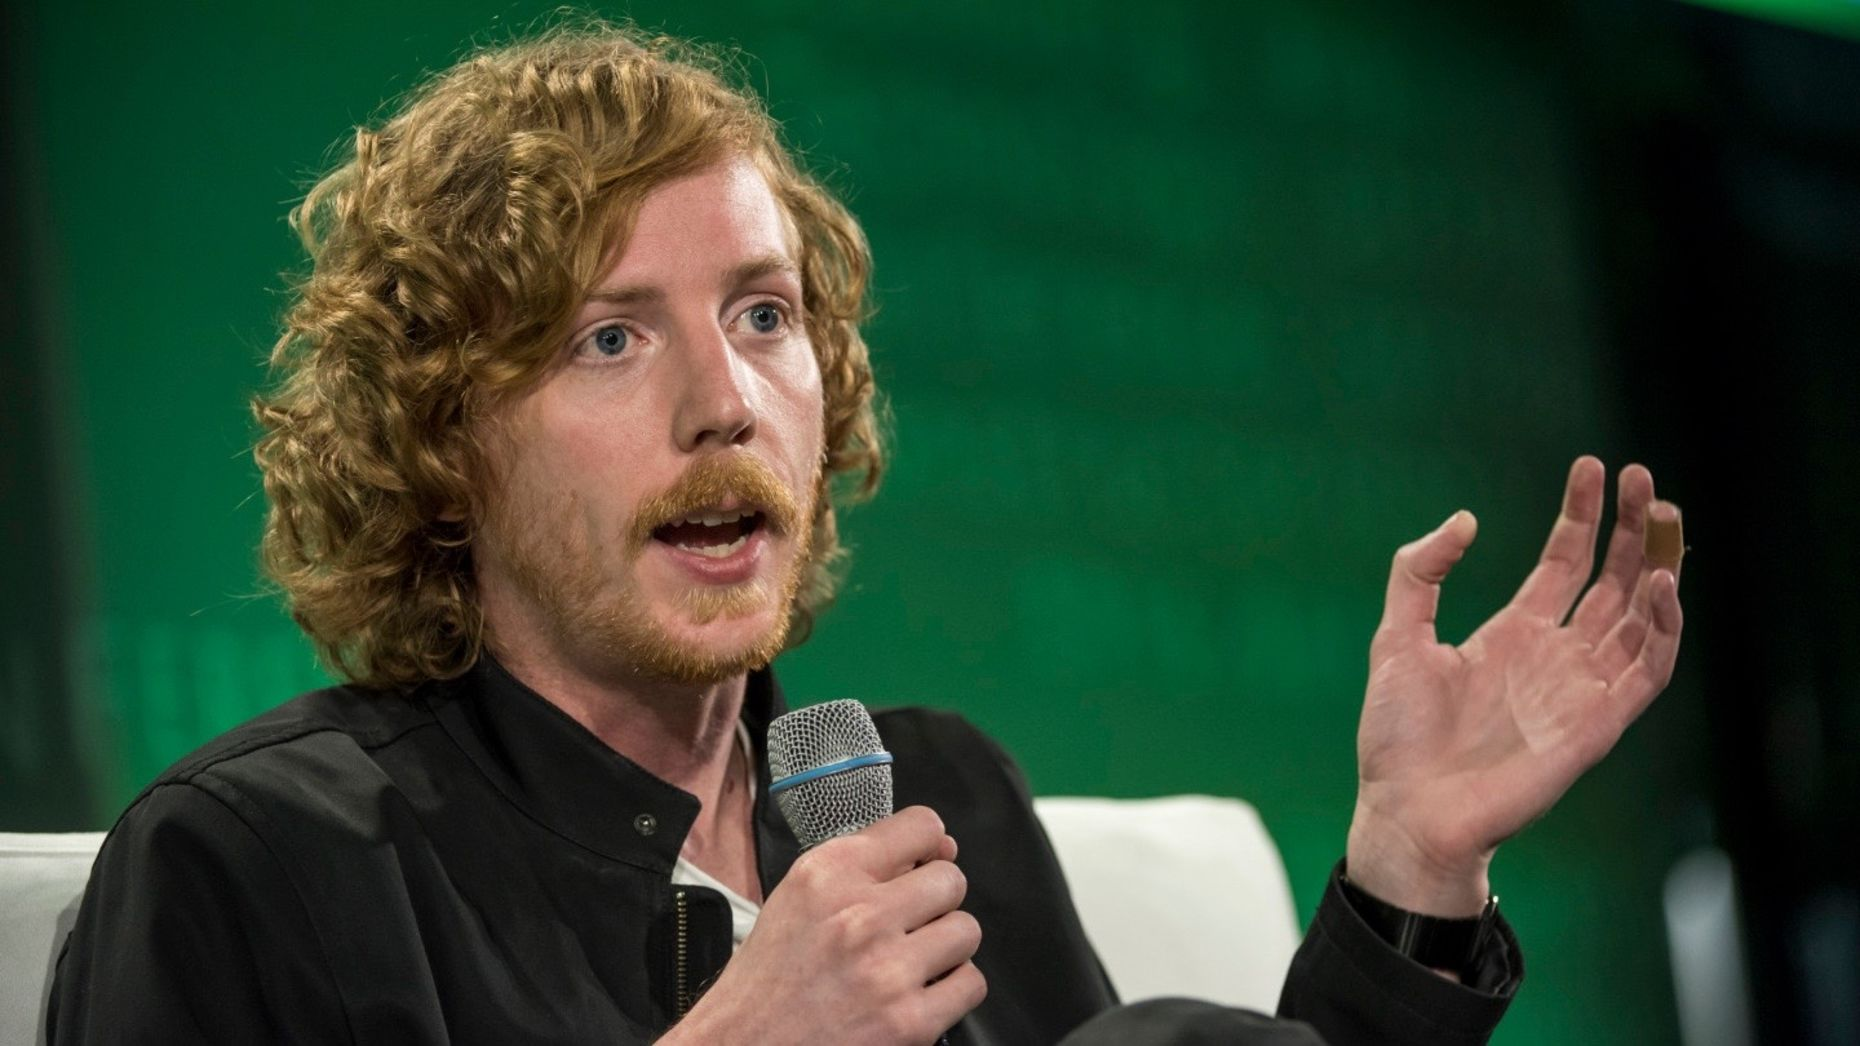 GitHub co-founder Chris Wanstrath. Photo by Bloomberg.